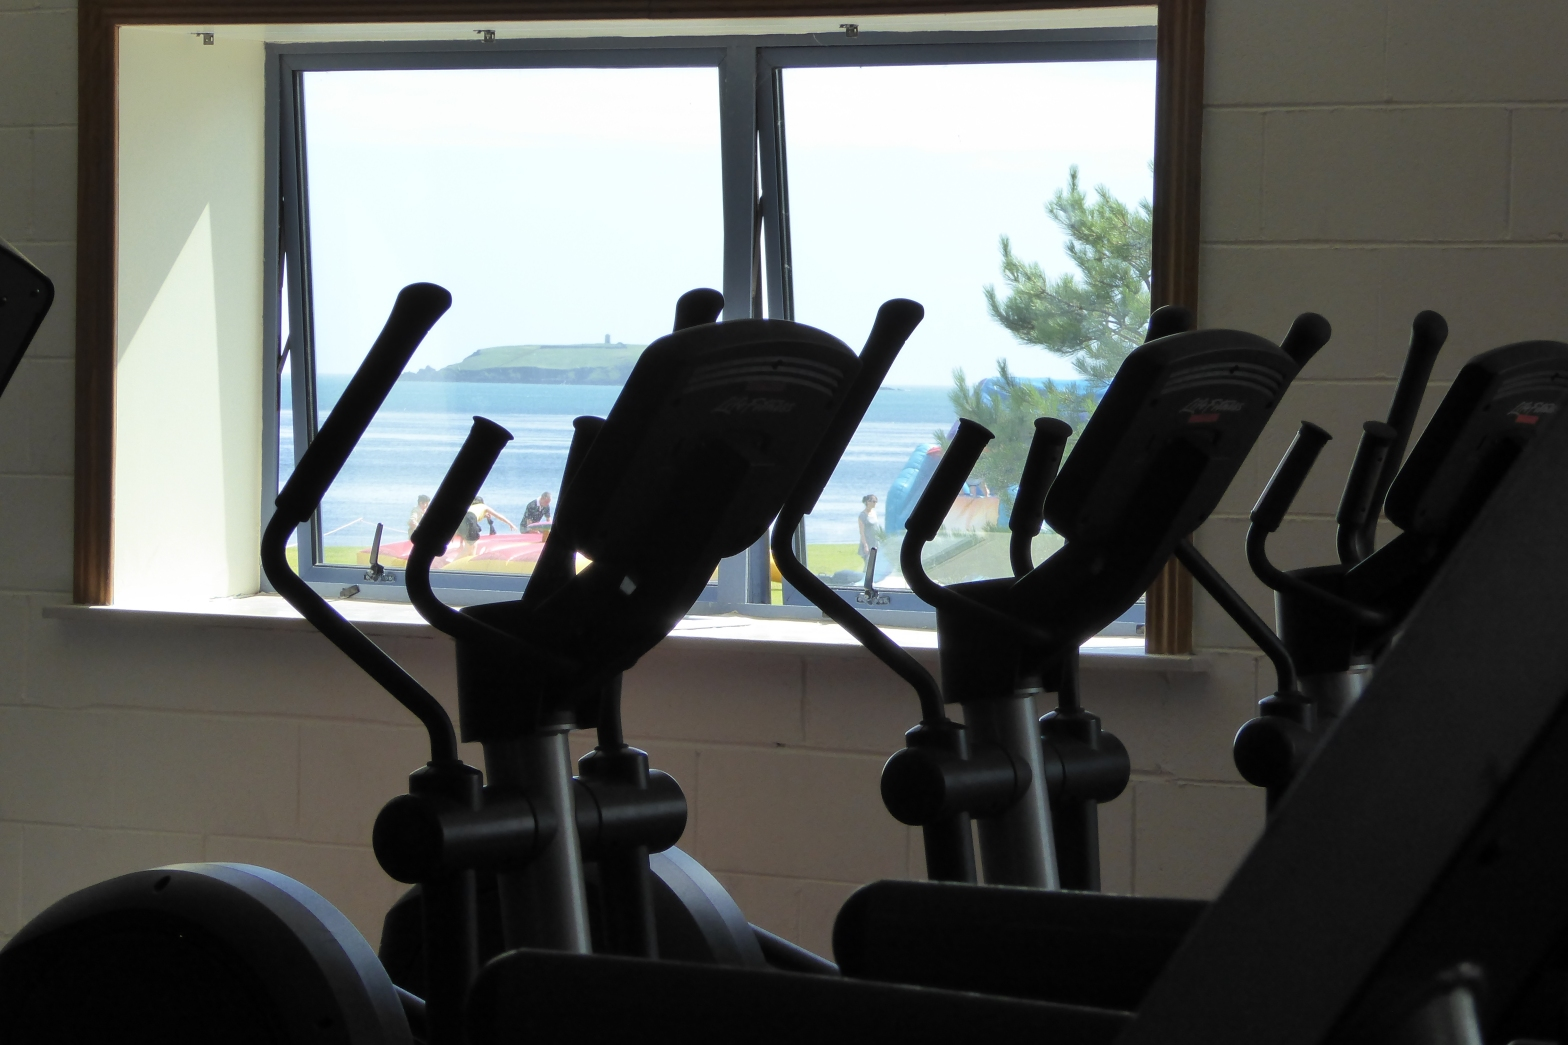 FUlly Equipped Gym in Youghal